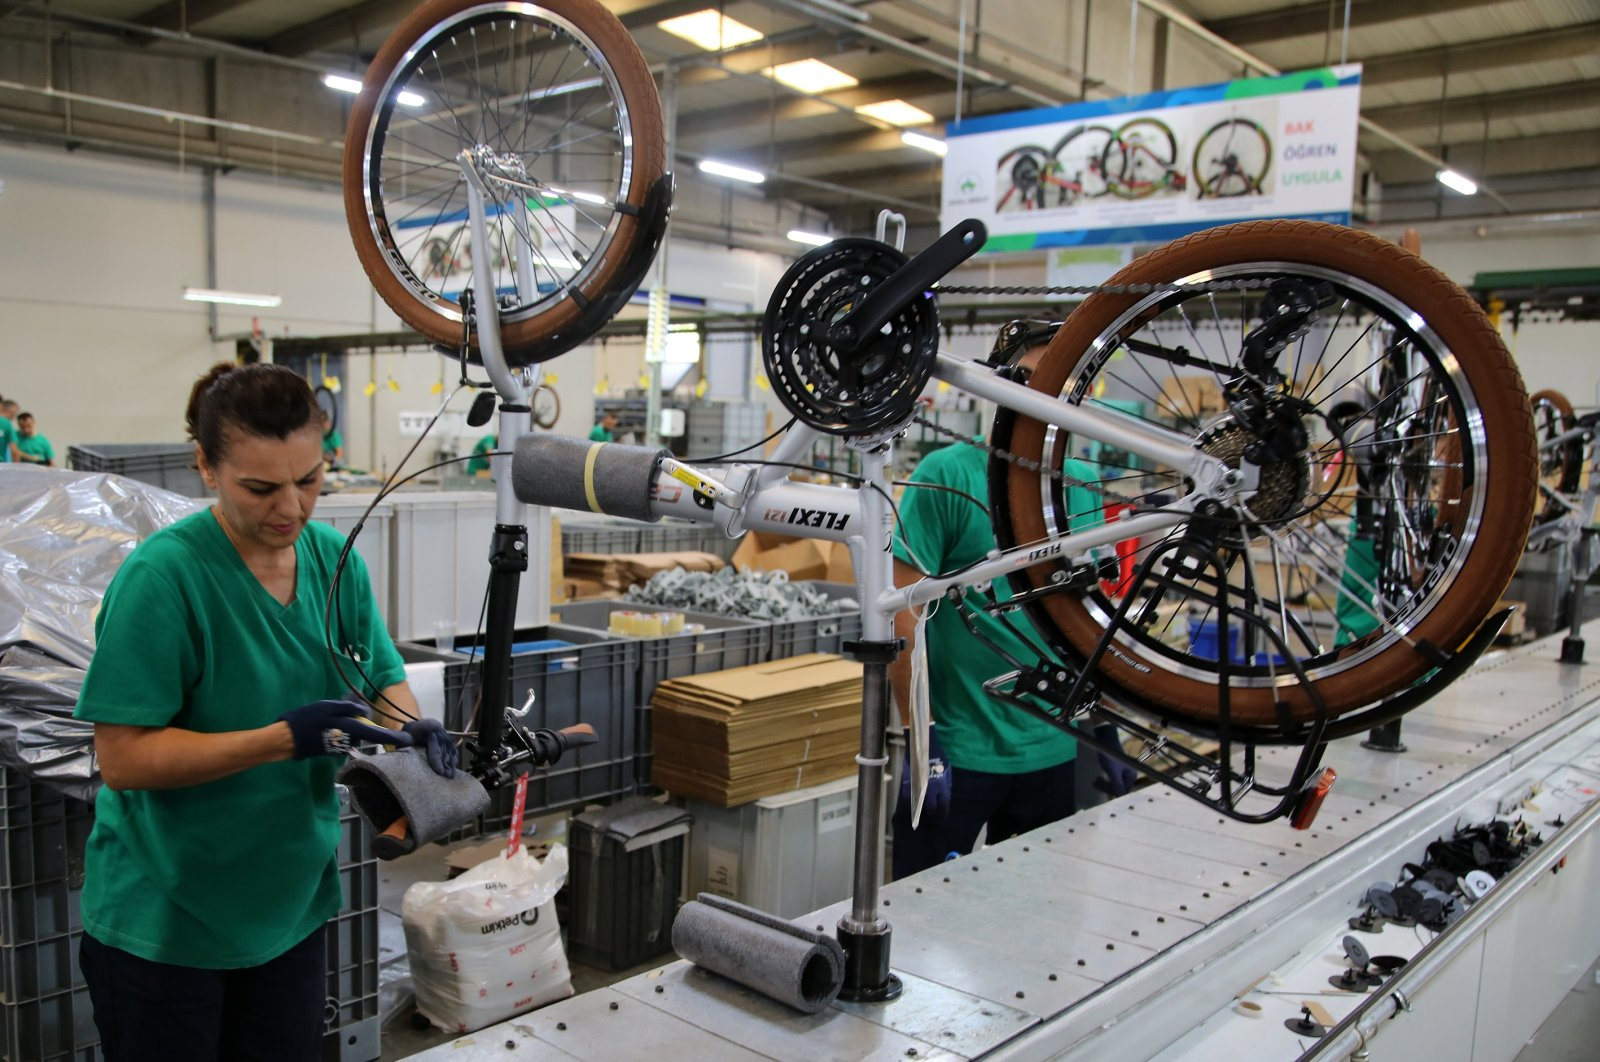 Workers are seen at a factory manufacturing bicycles in Turkey's western province of Manisa, Sept. 23, 2019. (AA Photo)